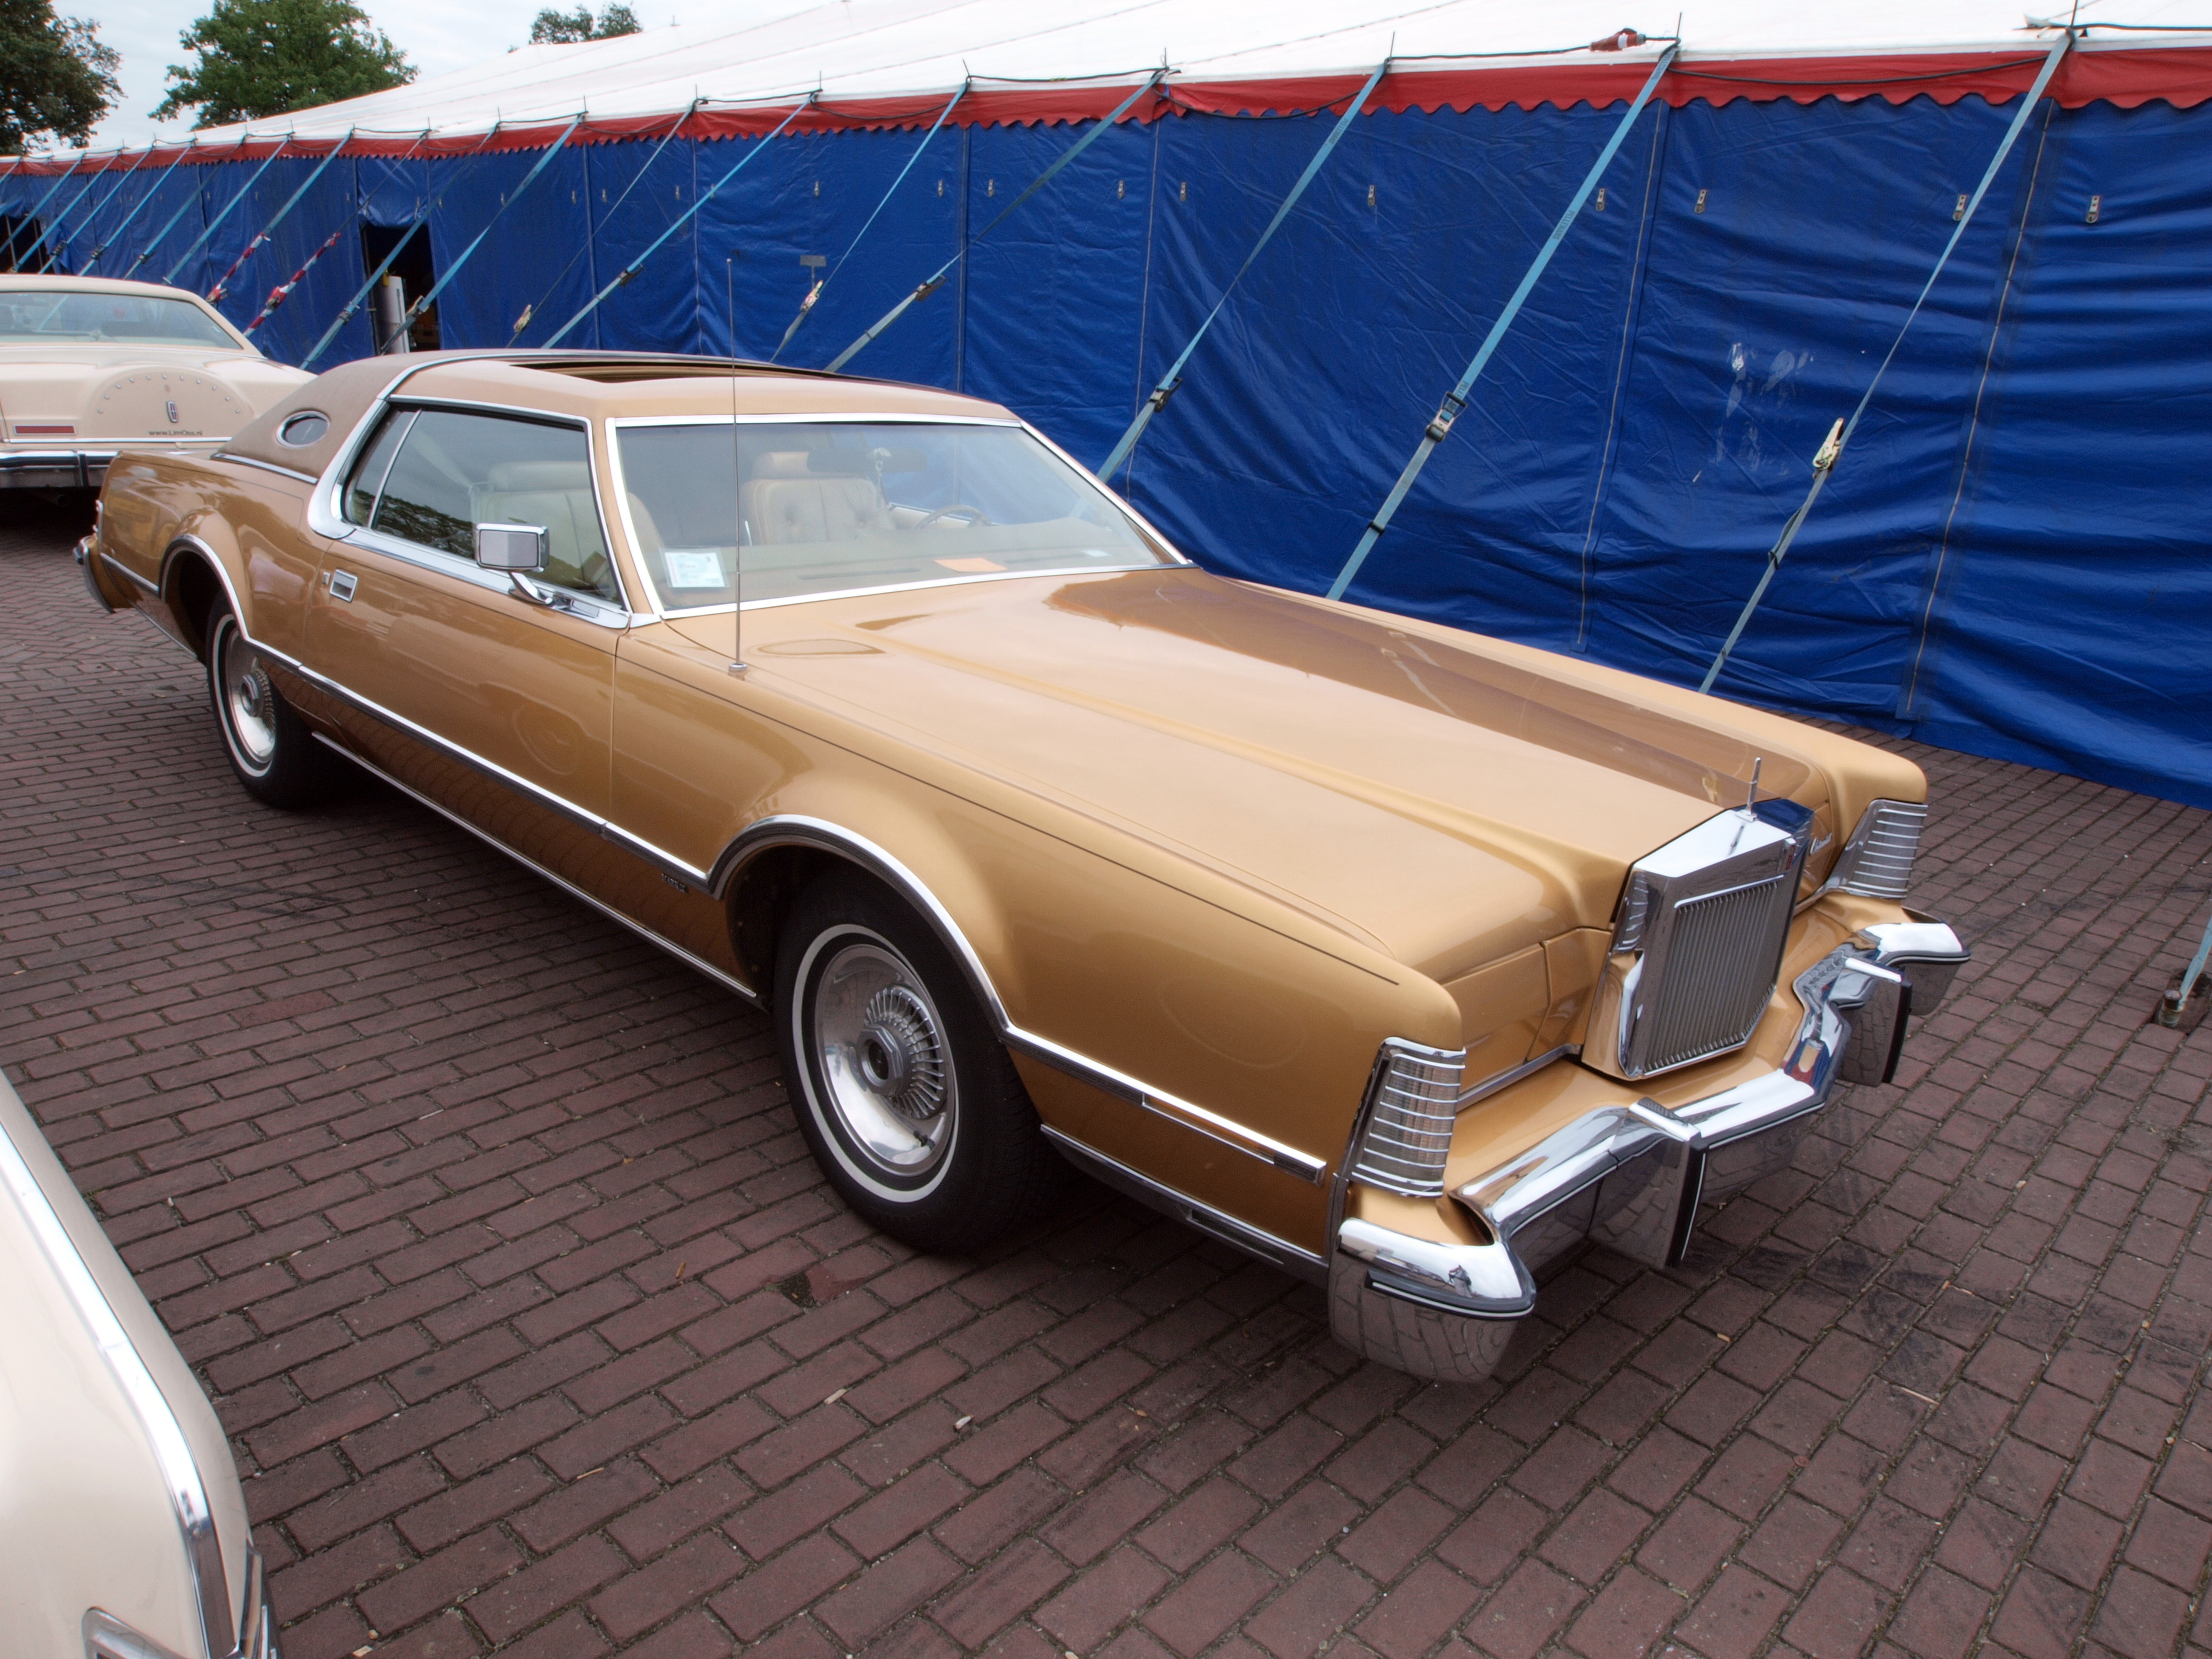 file 1975 lincoln continental mark iv dutch licence registration 21 yb 60 p3 jpg wikimedia. Black Bedroom Furniture Sets. Home Design Ideas